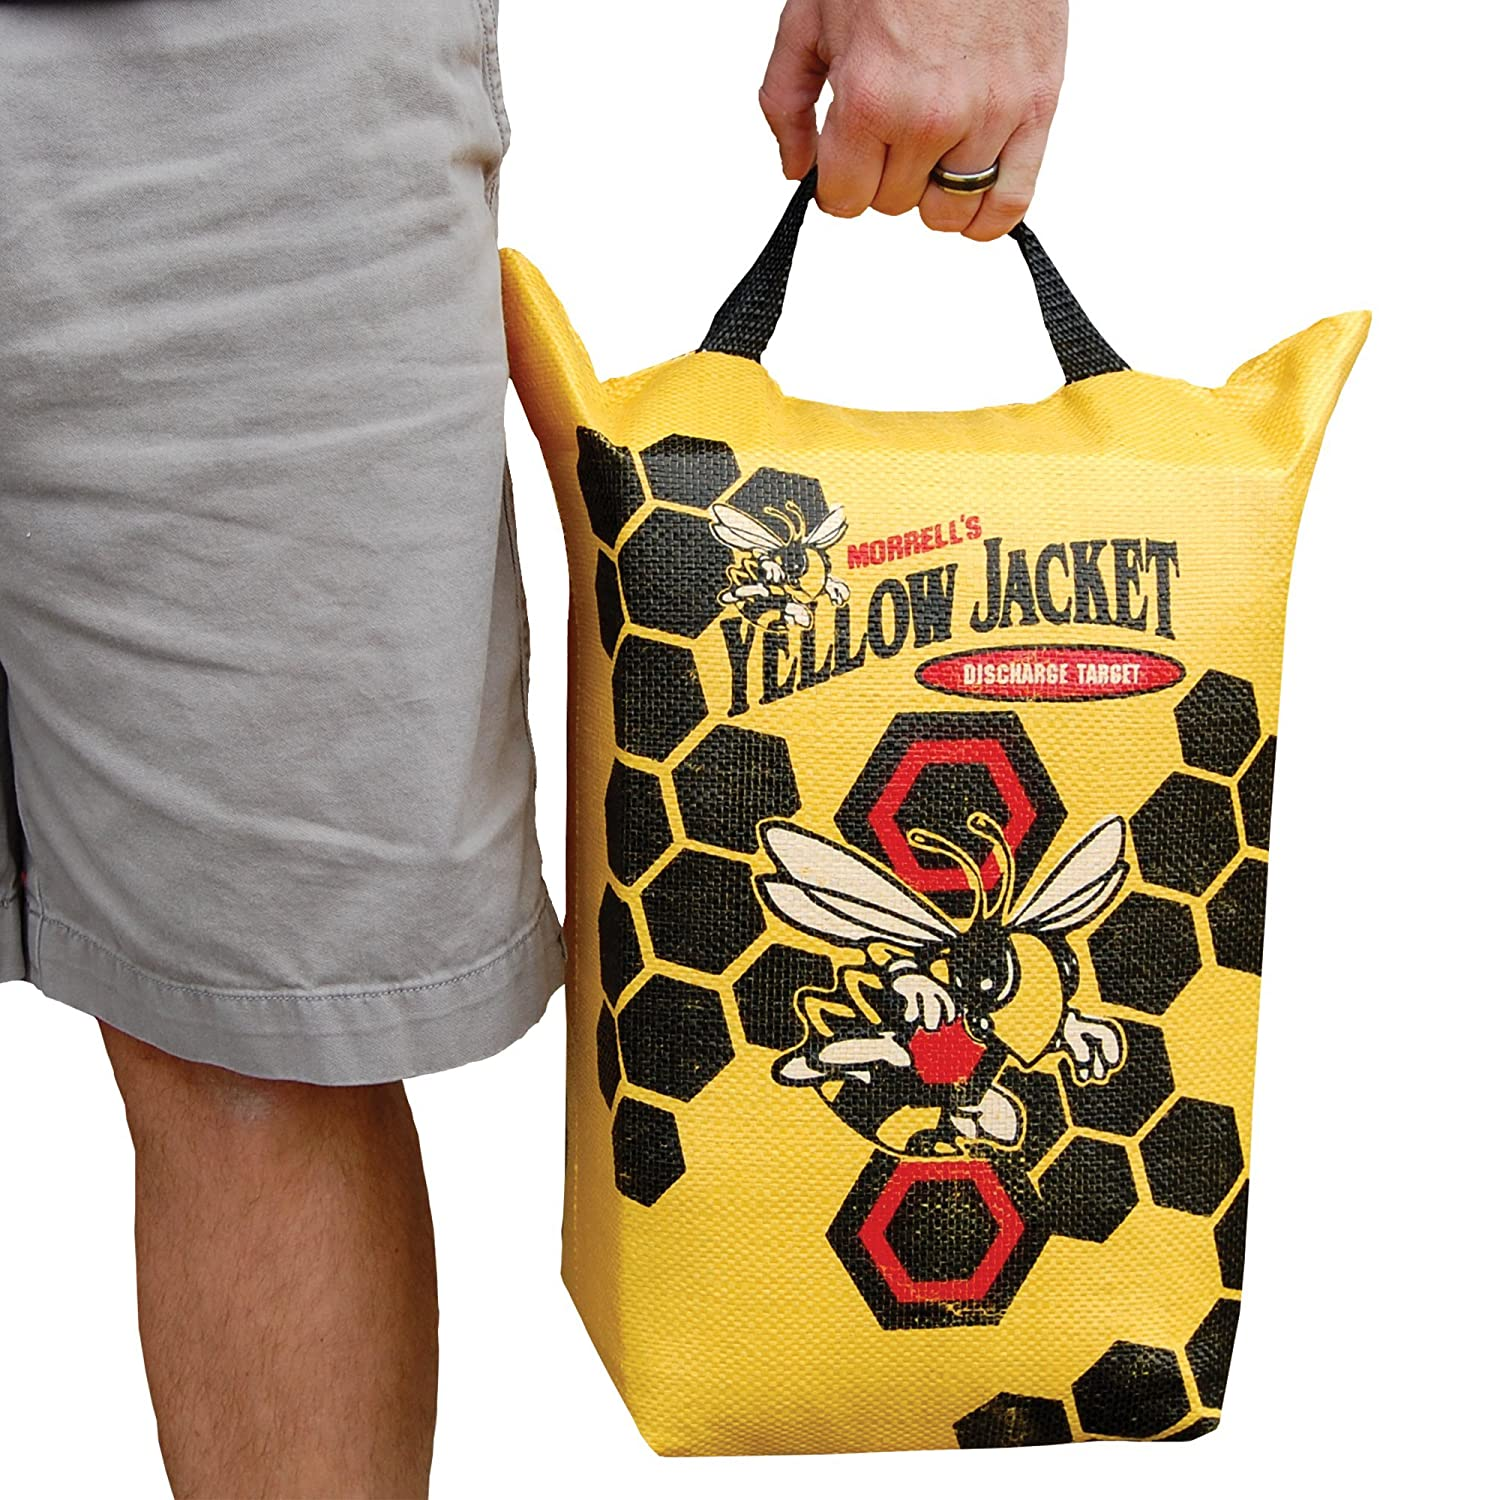 Morrell Yellow Jacket Crossbow Bolt Discharge Bag Archery Target - for  Safely Discharging Crossbow Bolts After 0ff0281ea3